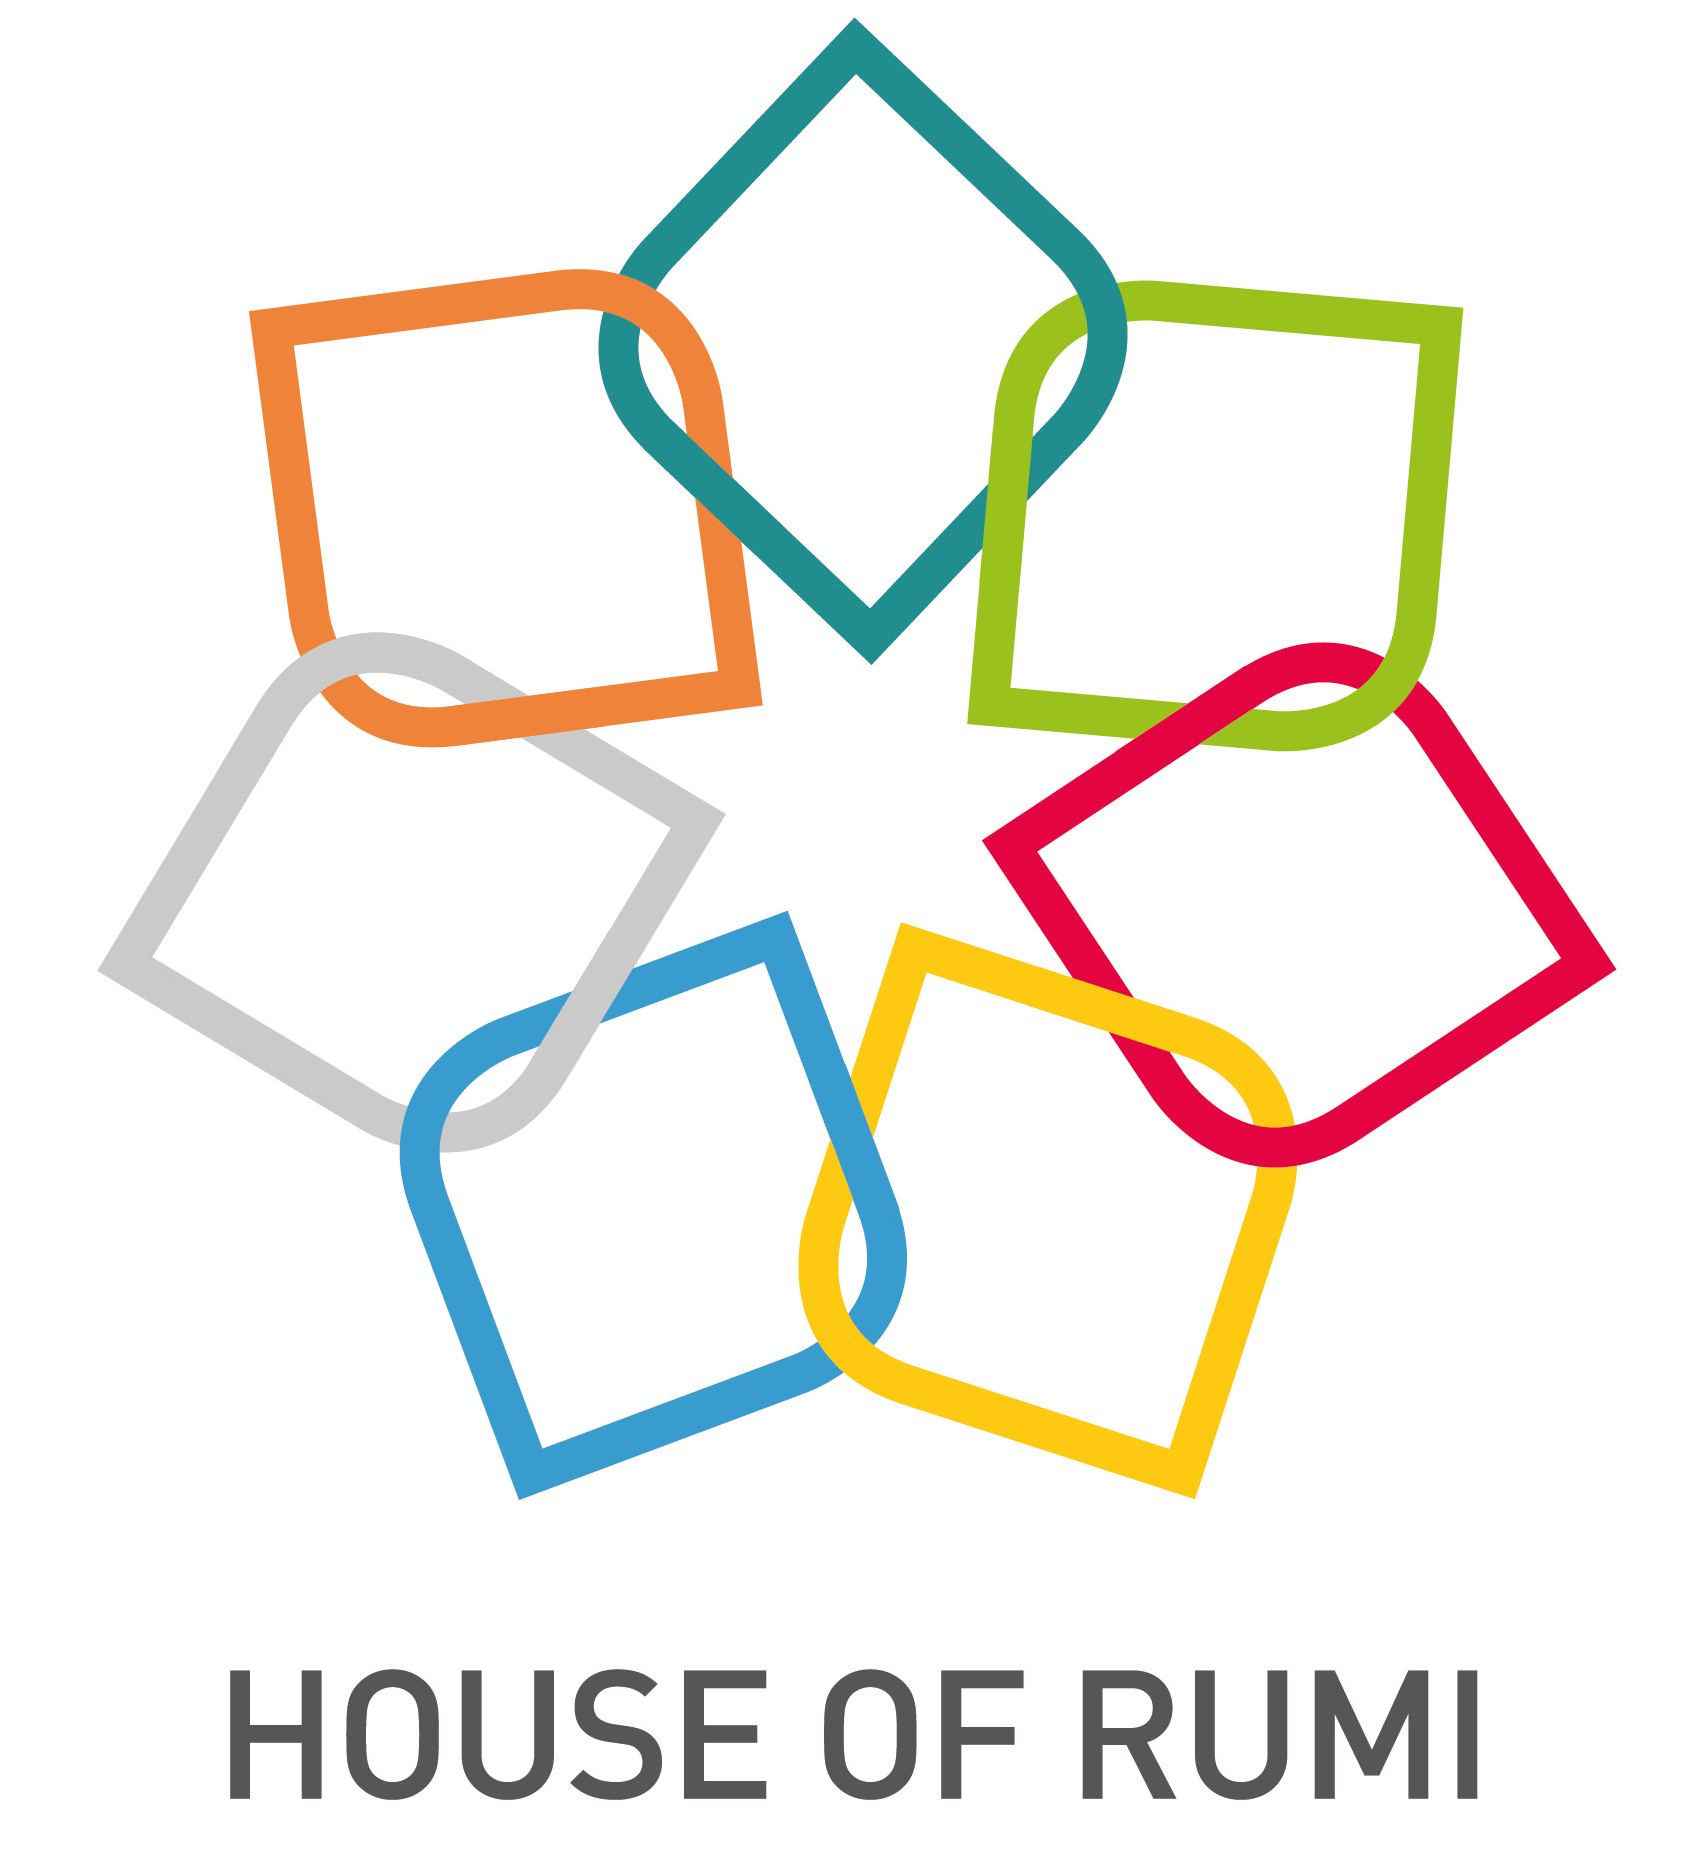 House of Rumi